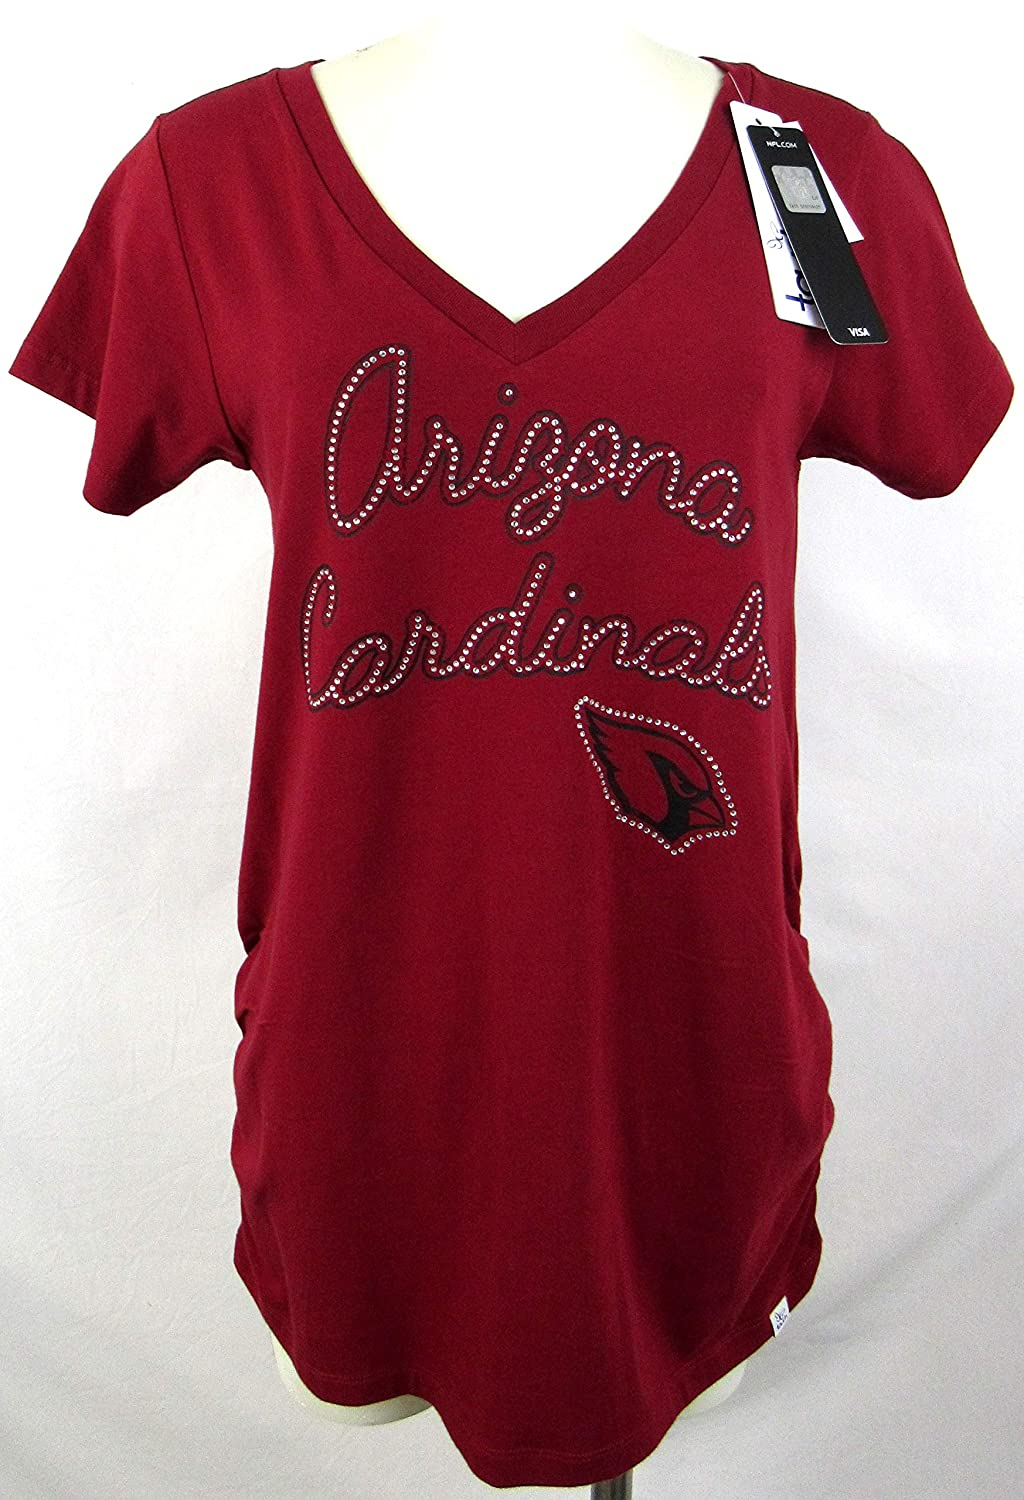 finest selection 71866 256d4 Amazon.com : Womens Touch Arizona Cardinals Rhinestone Bling ...